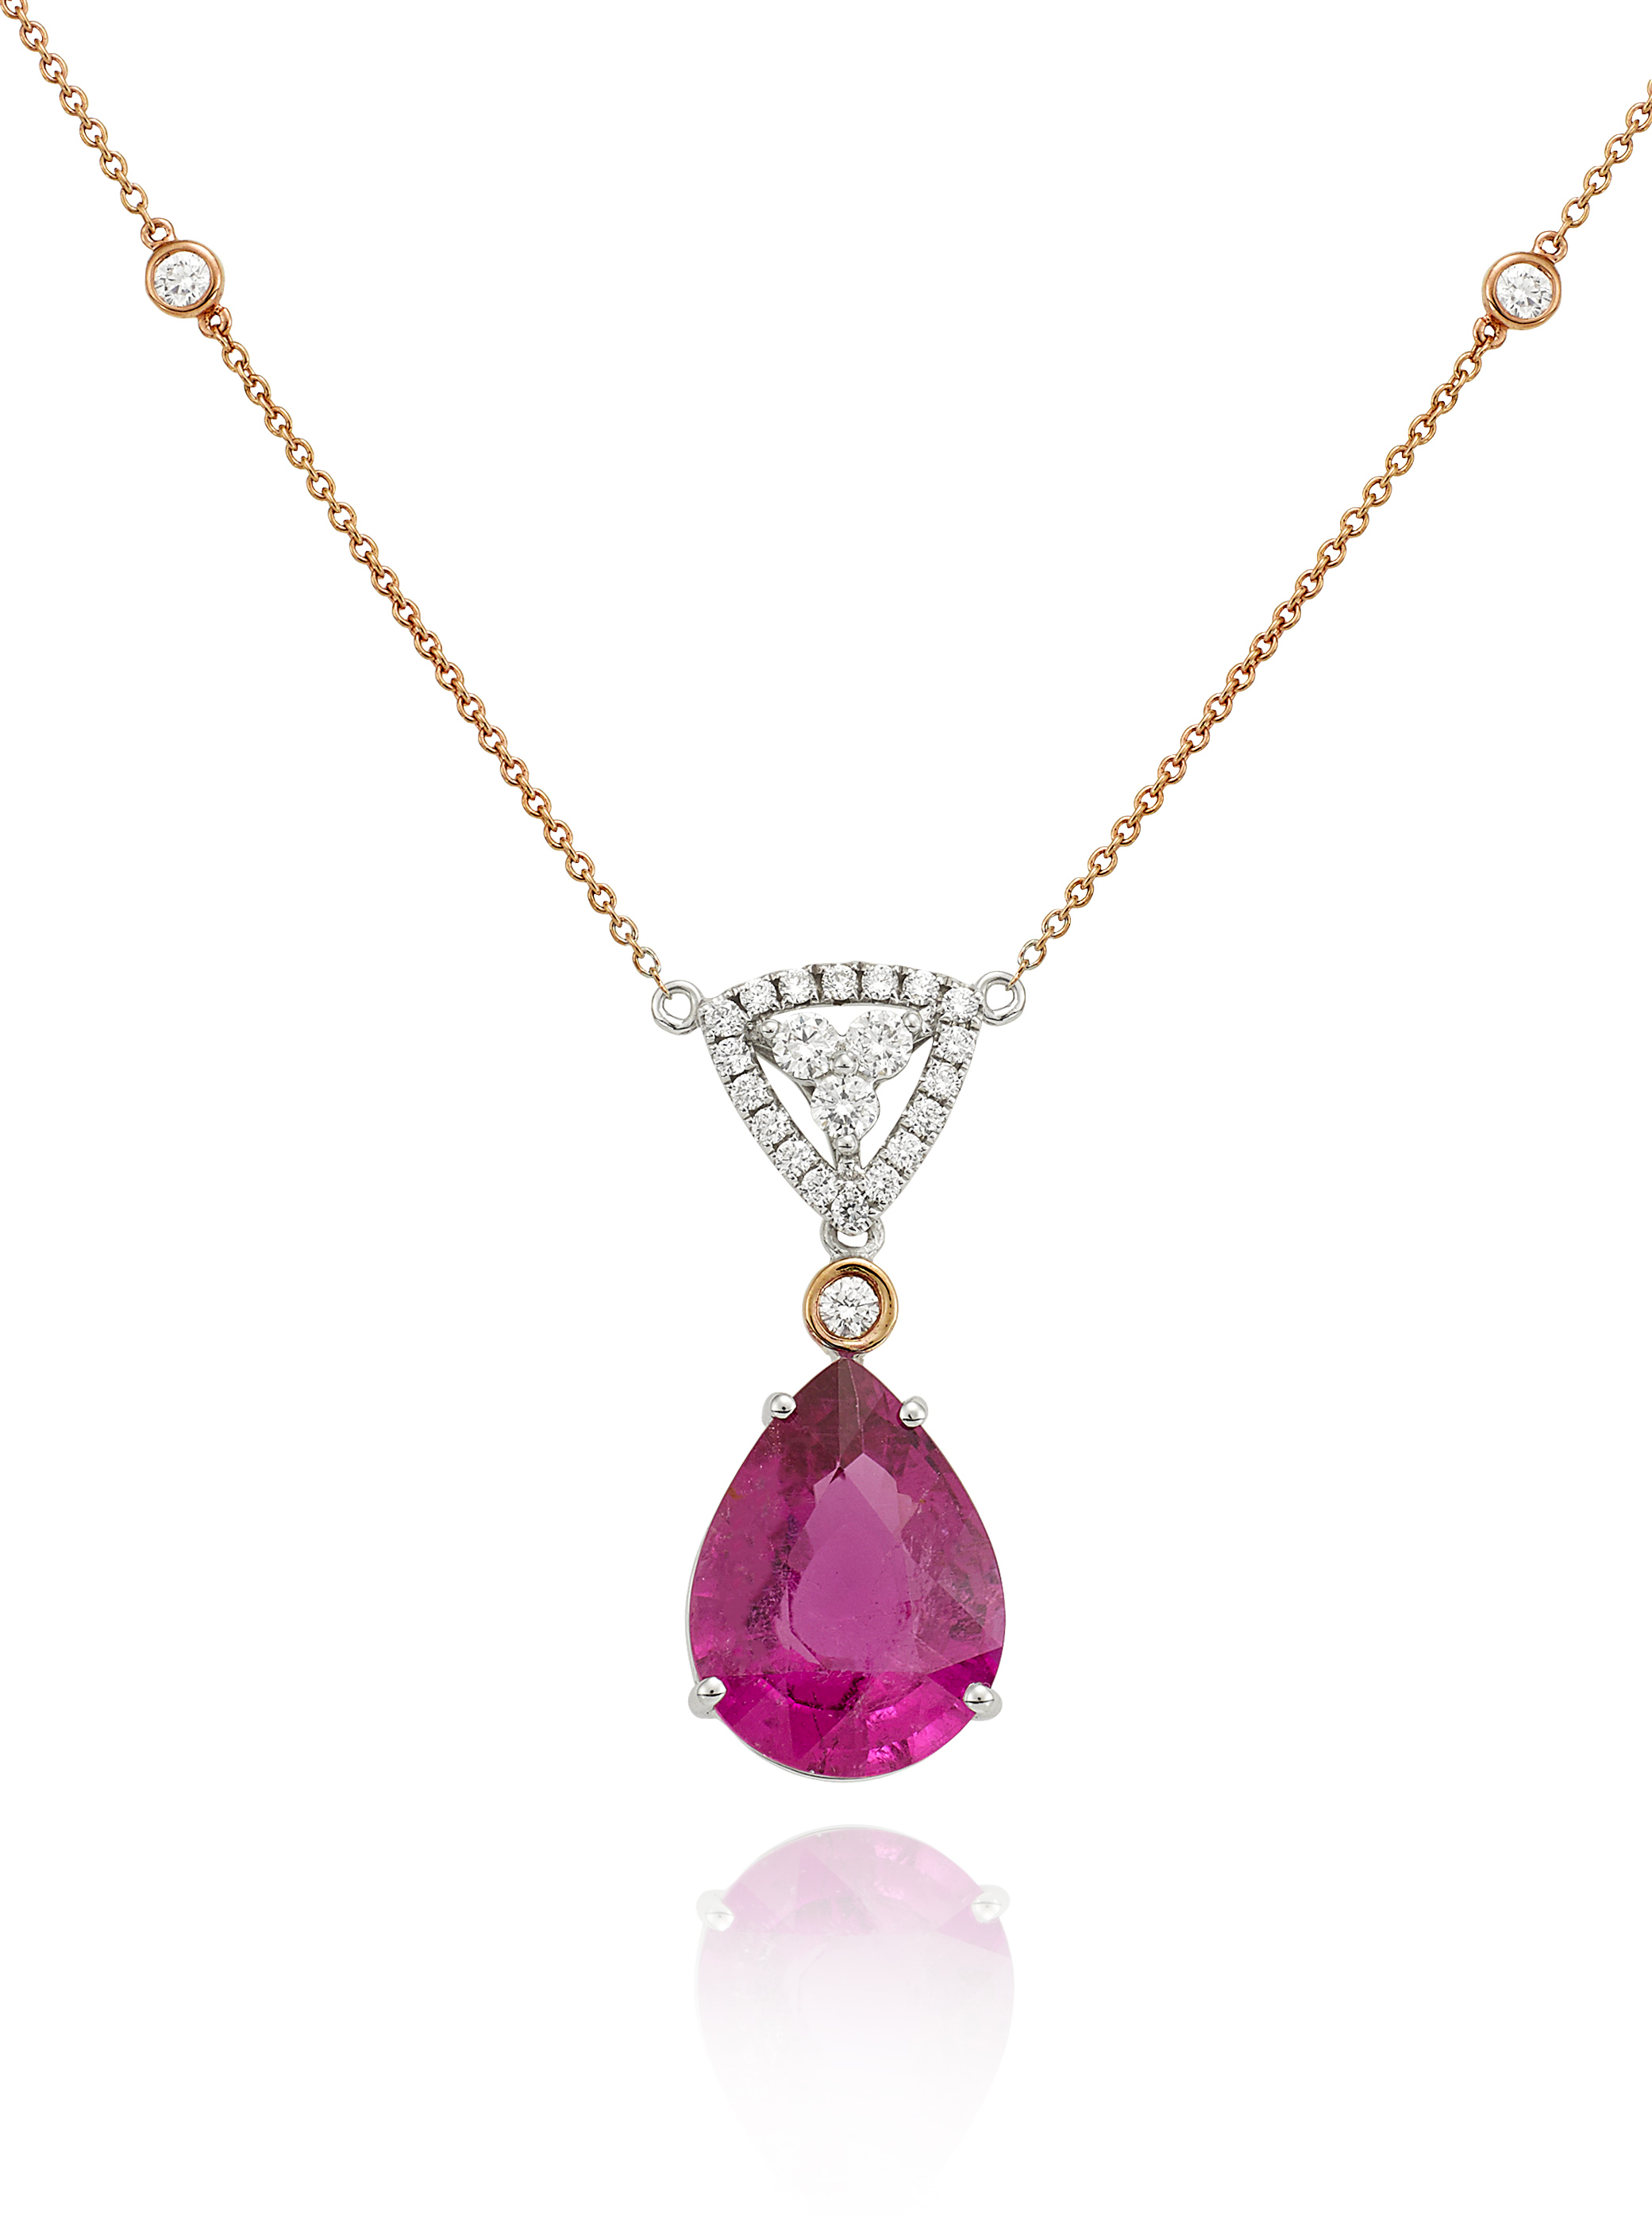 all collections products gold dropnecklaces pendant necklace gemstone y parken pink tourmaline shop pendants pinktourmaline closeup